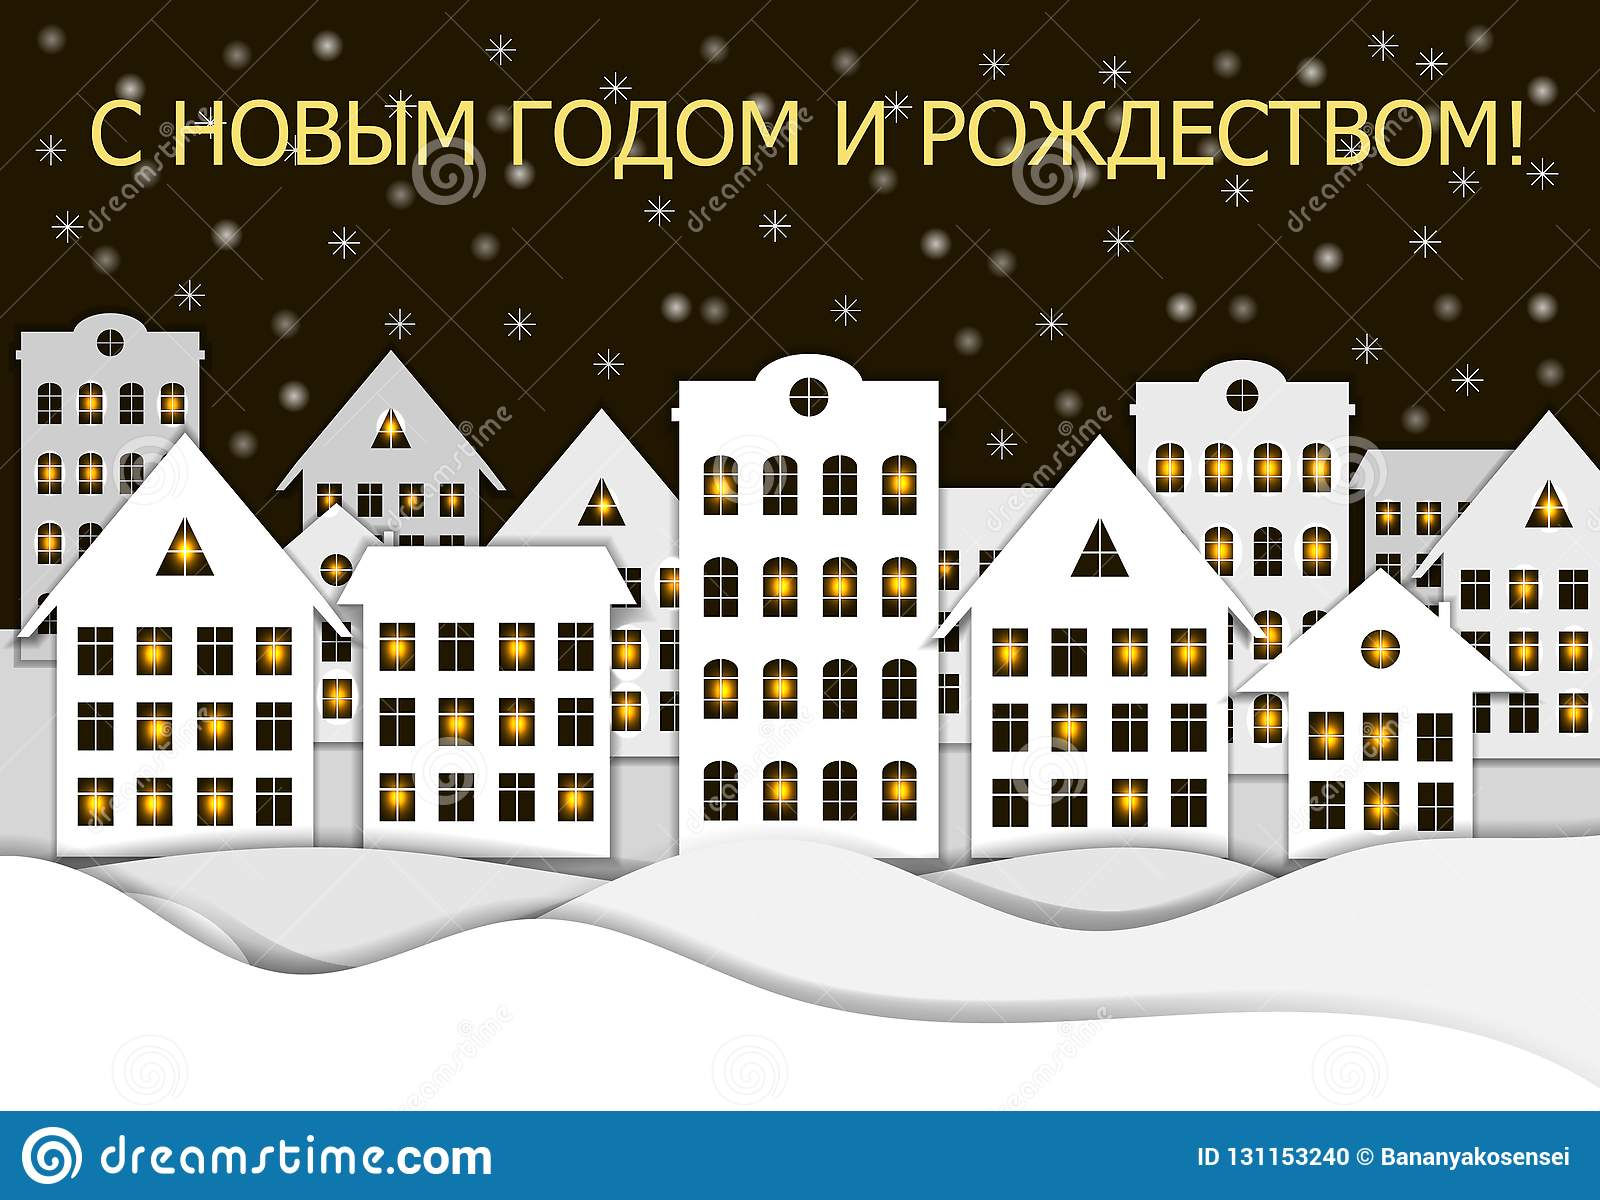 Merry Christmas In Russian.Vector Happy New Year And Merry Christmas On Russian